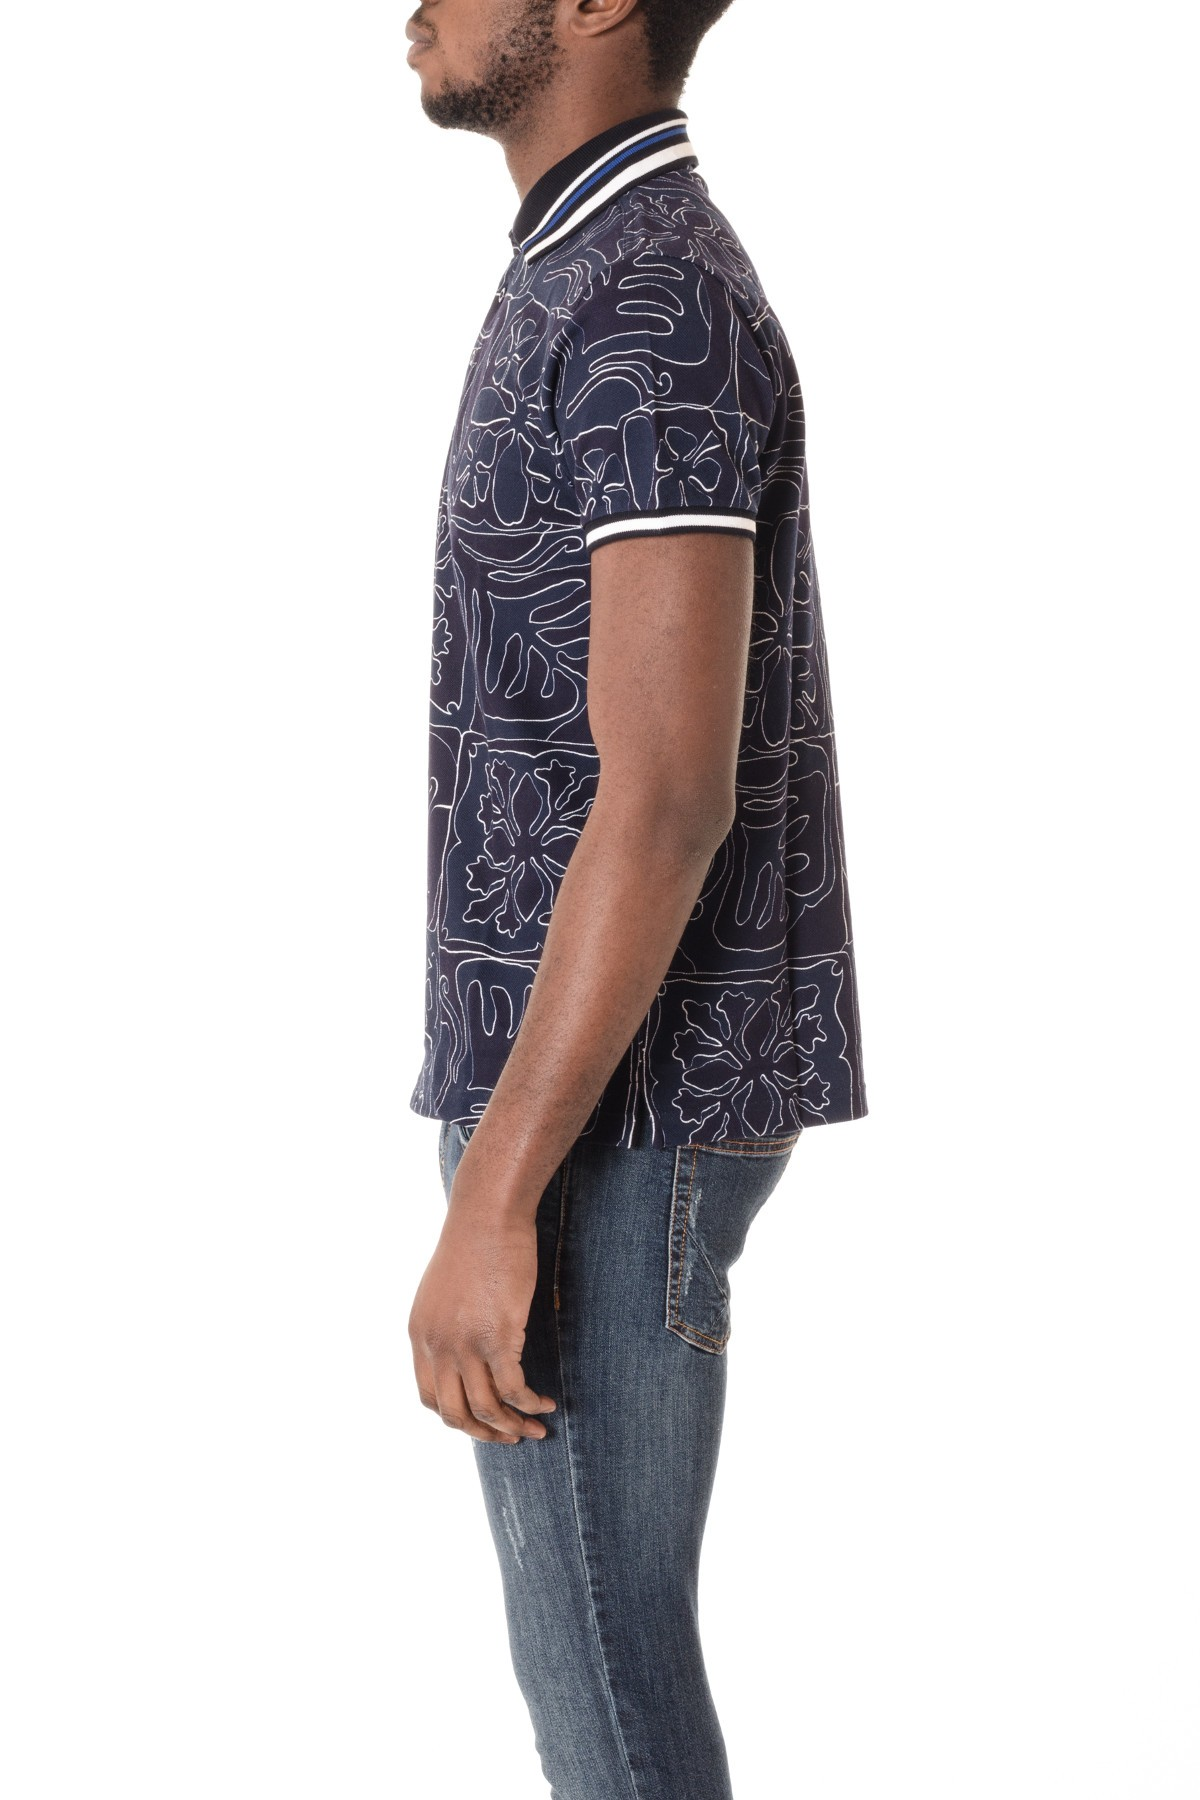 3f1d01b83 ... Dark blue polo shirt for men with pattern ETRO S/S 16 ...